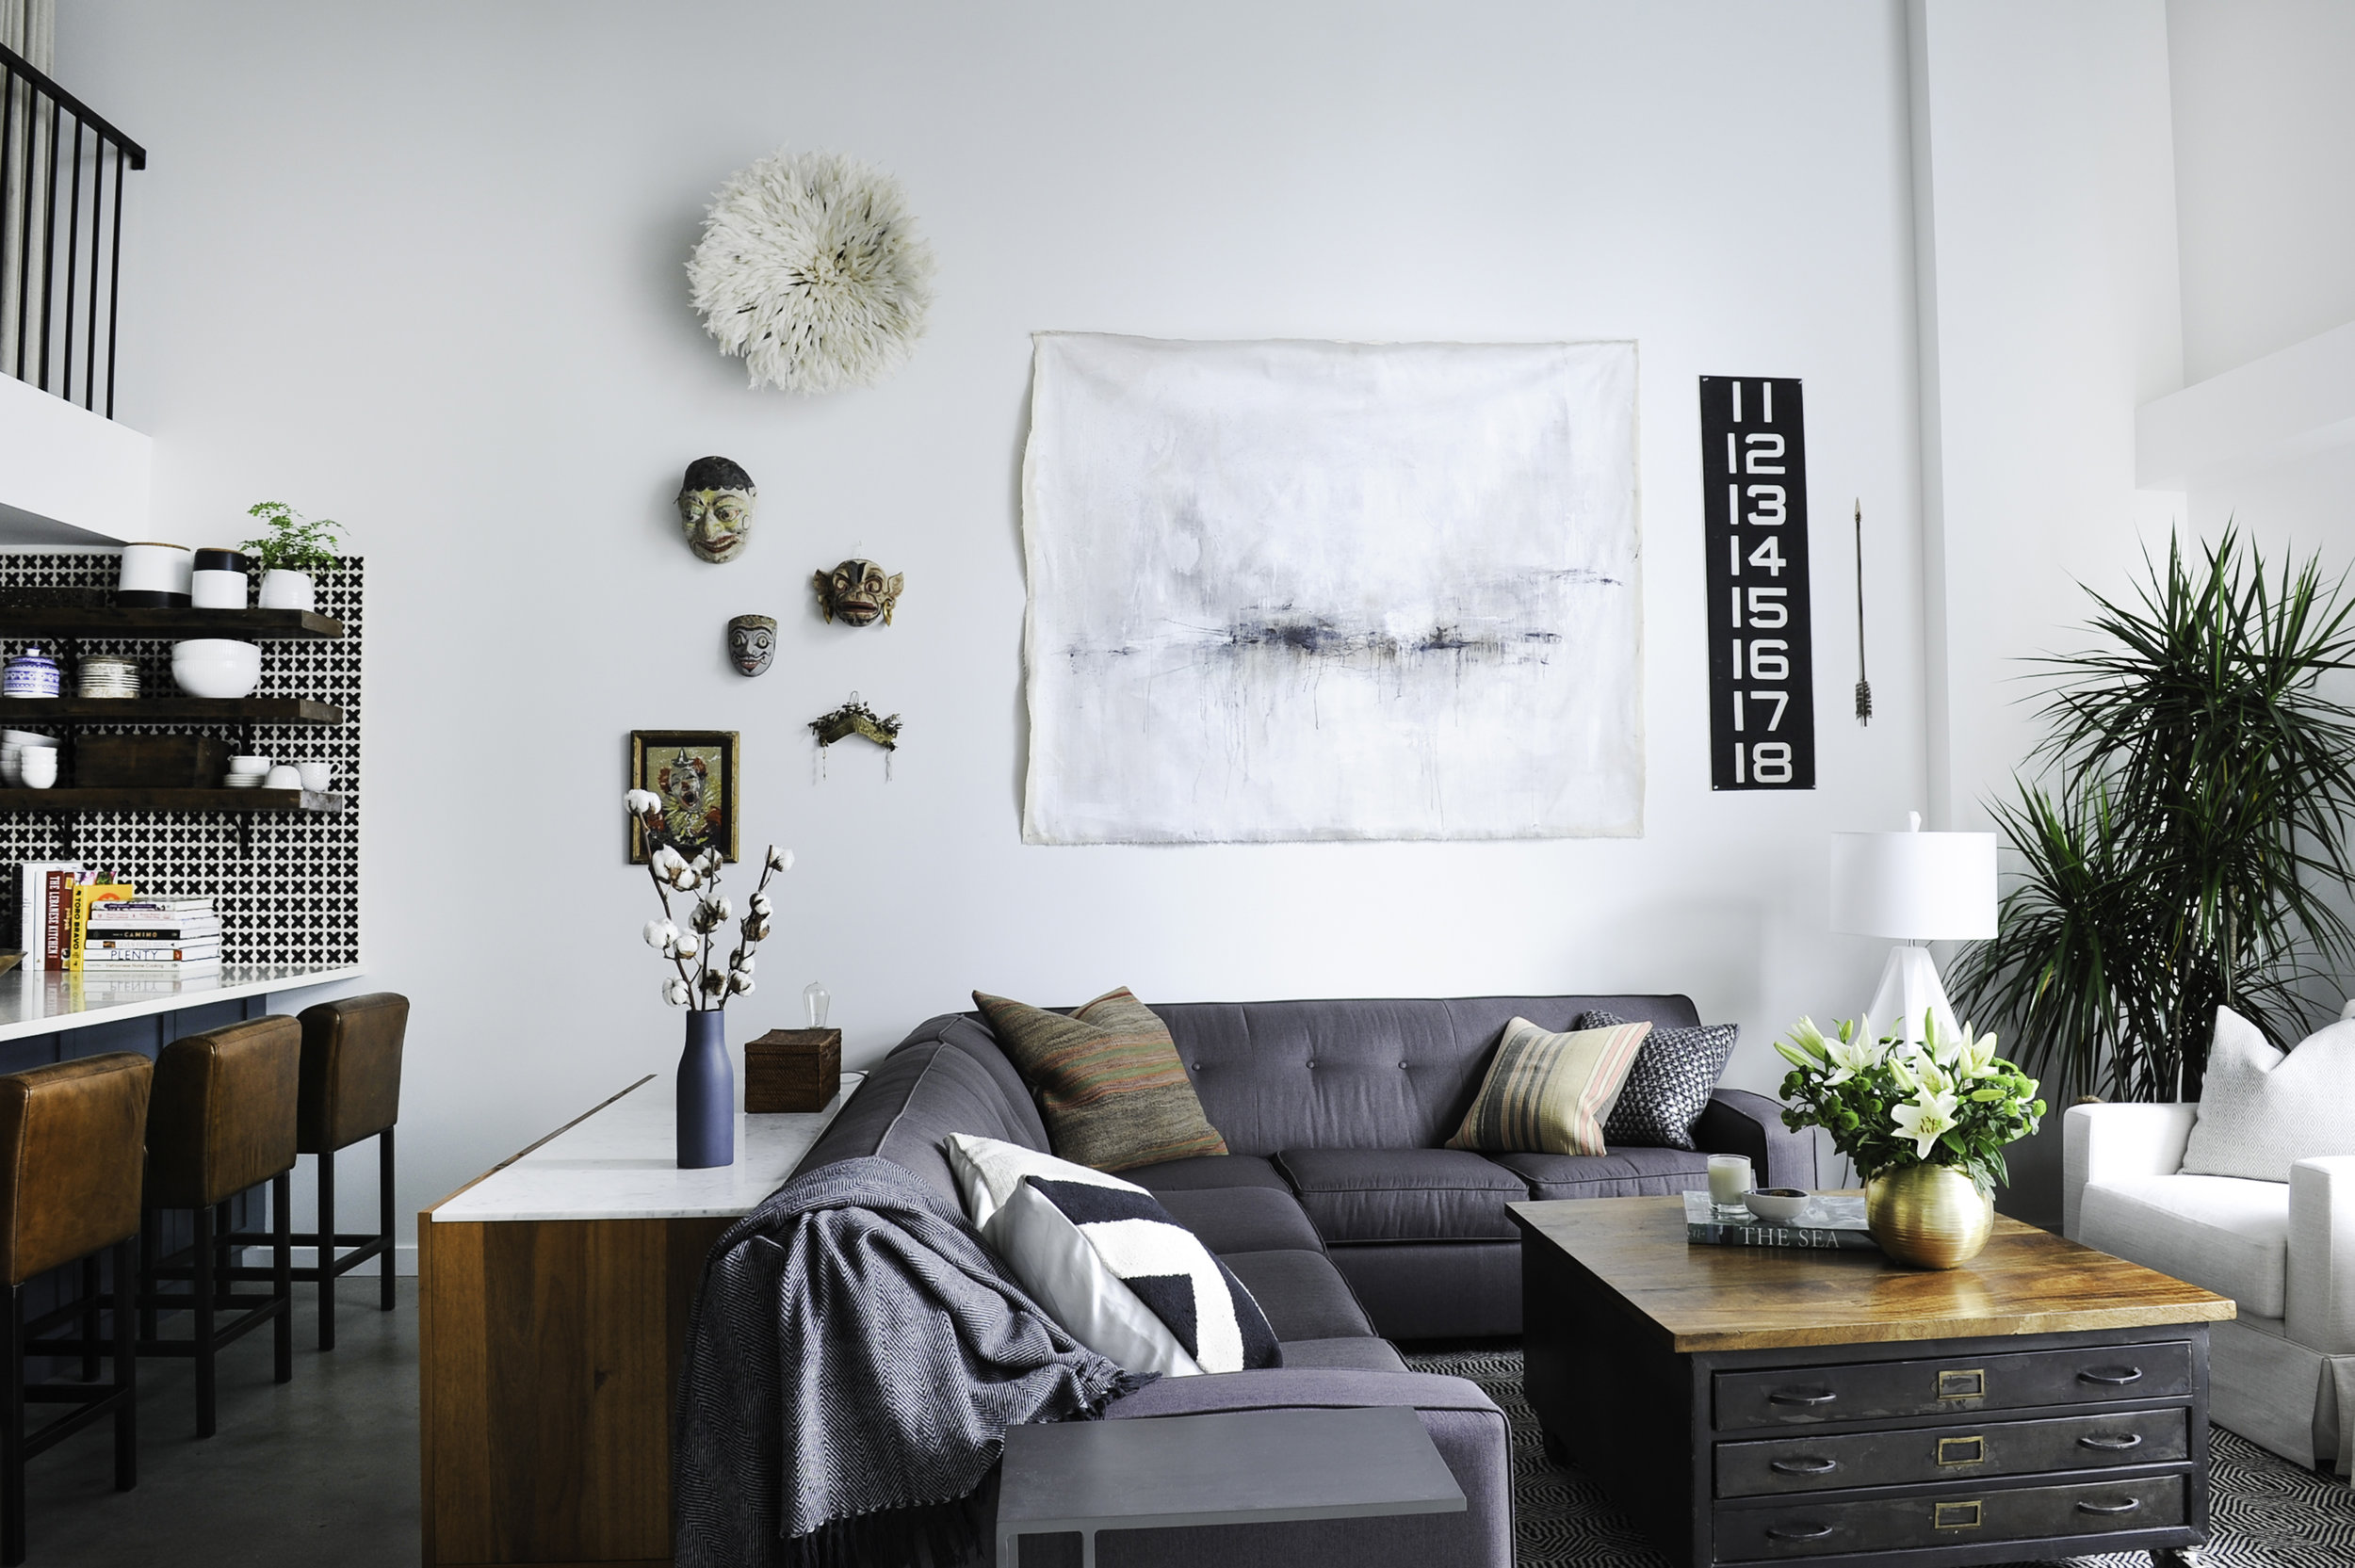 A sunny living room with a wooden coffee table surrounded by a large grey sectional and white armchair, with various eclectic decor on the walls, including masks, a various art prints.